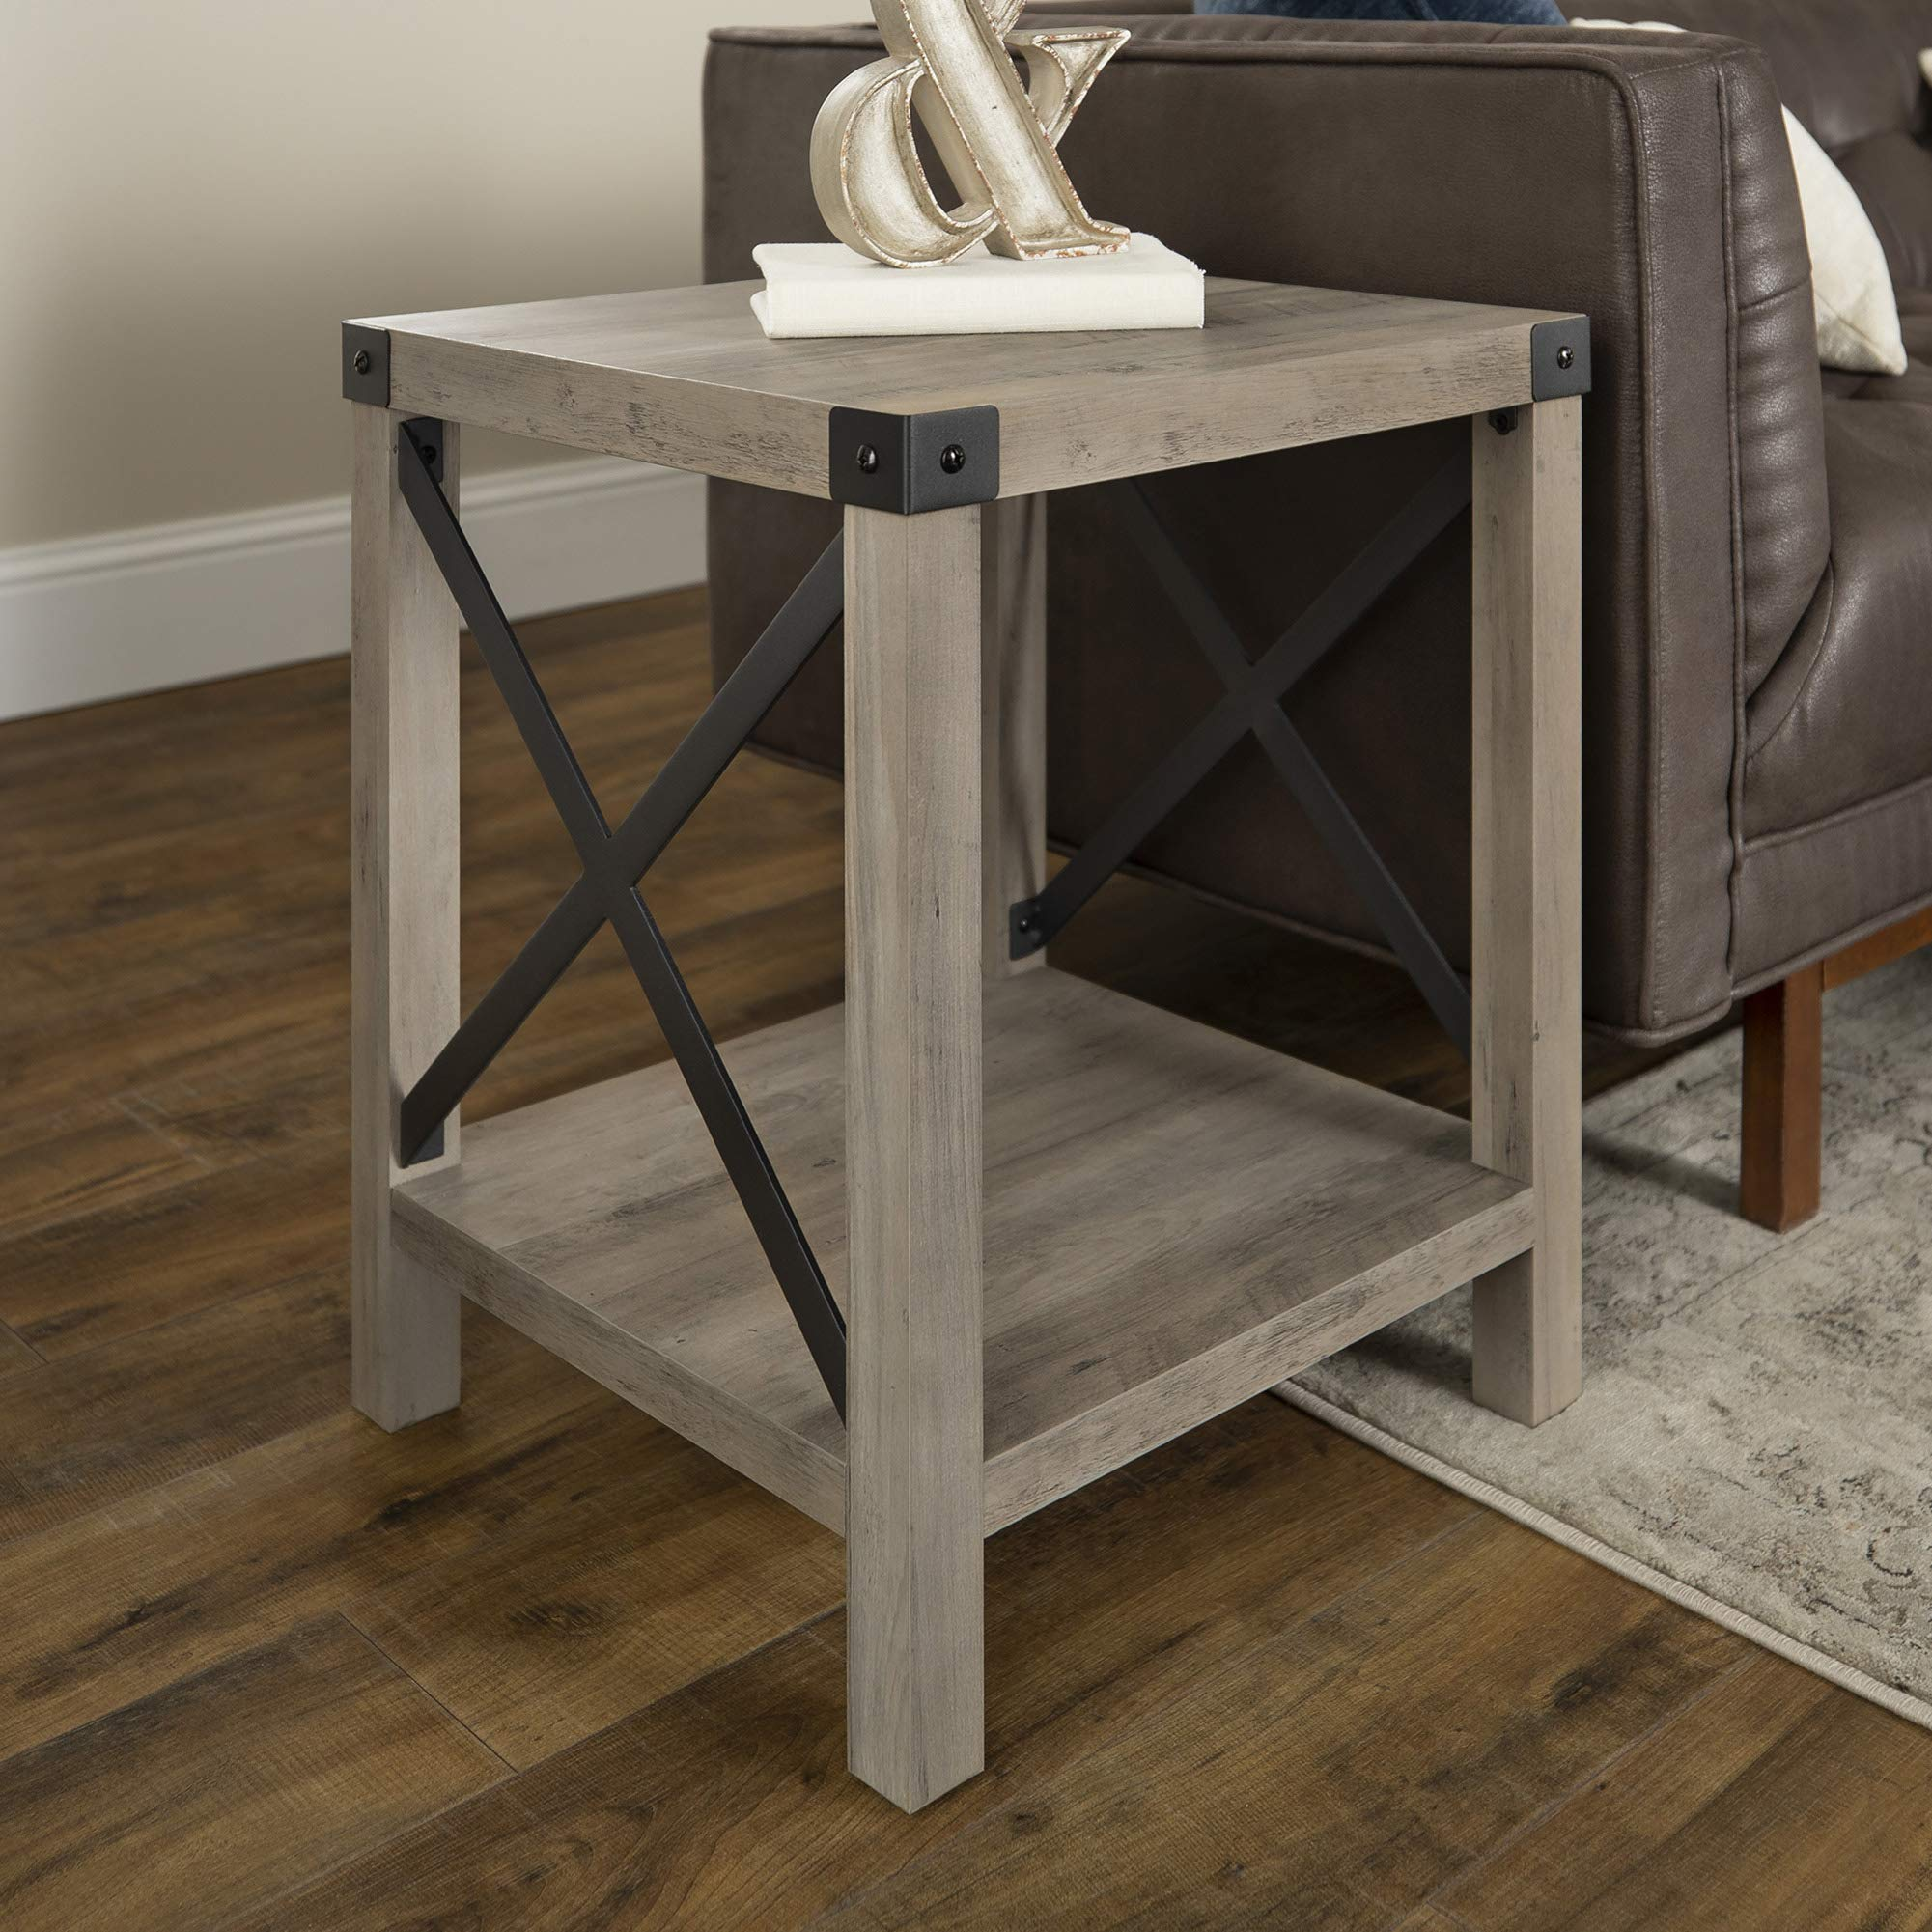 WE Furniture Rustic Modern Farmhouse Square Side End Accent Table Living Room, 18 Inch, Grey by WE Furniture